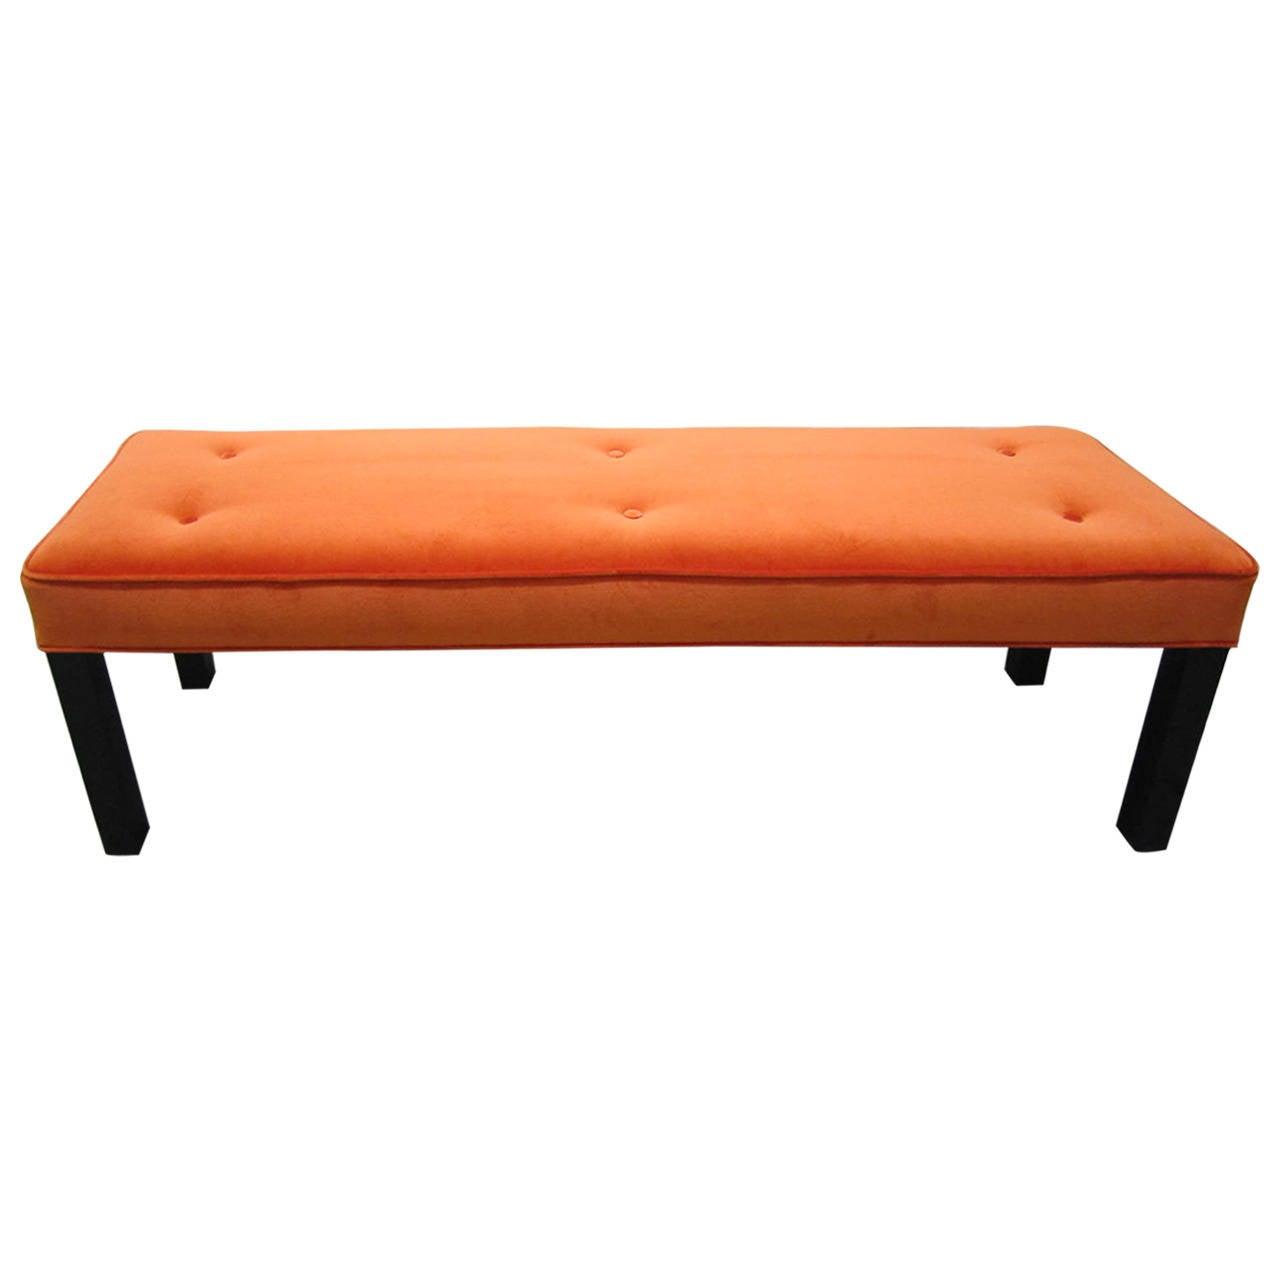 Gorgeous Probber Style Orange Velvet Bench Mid Century Modern For Sale At 1stdibs